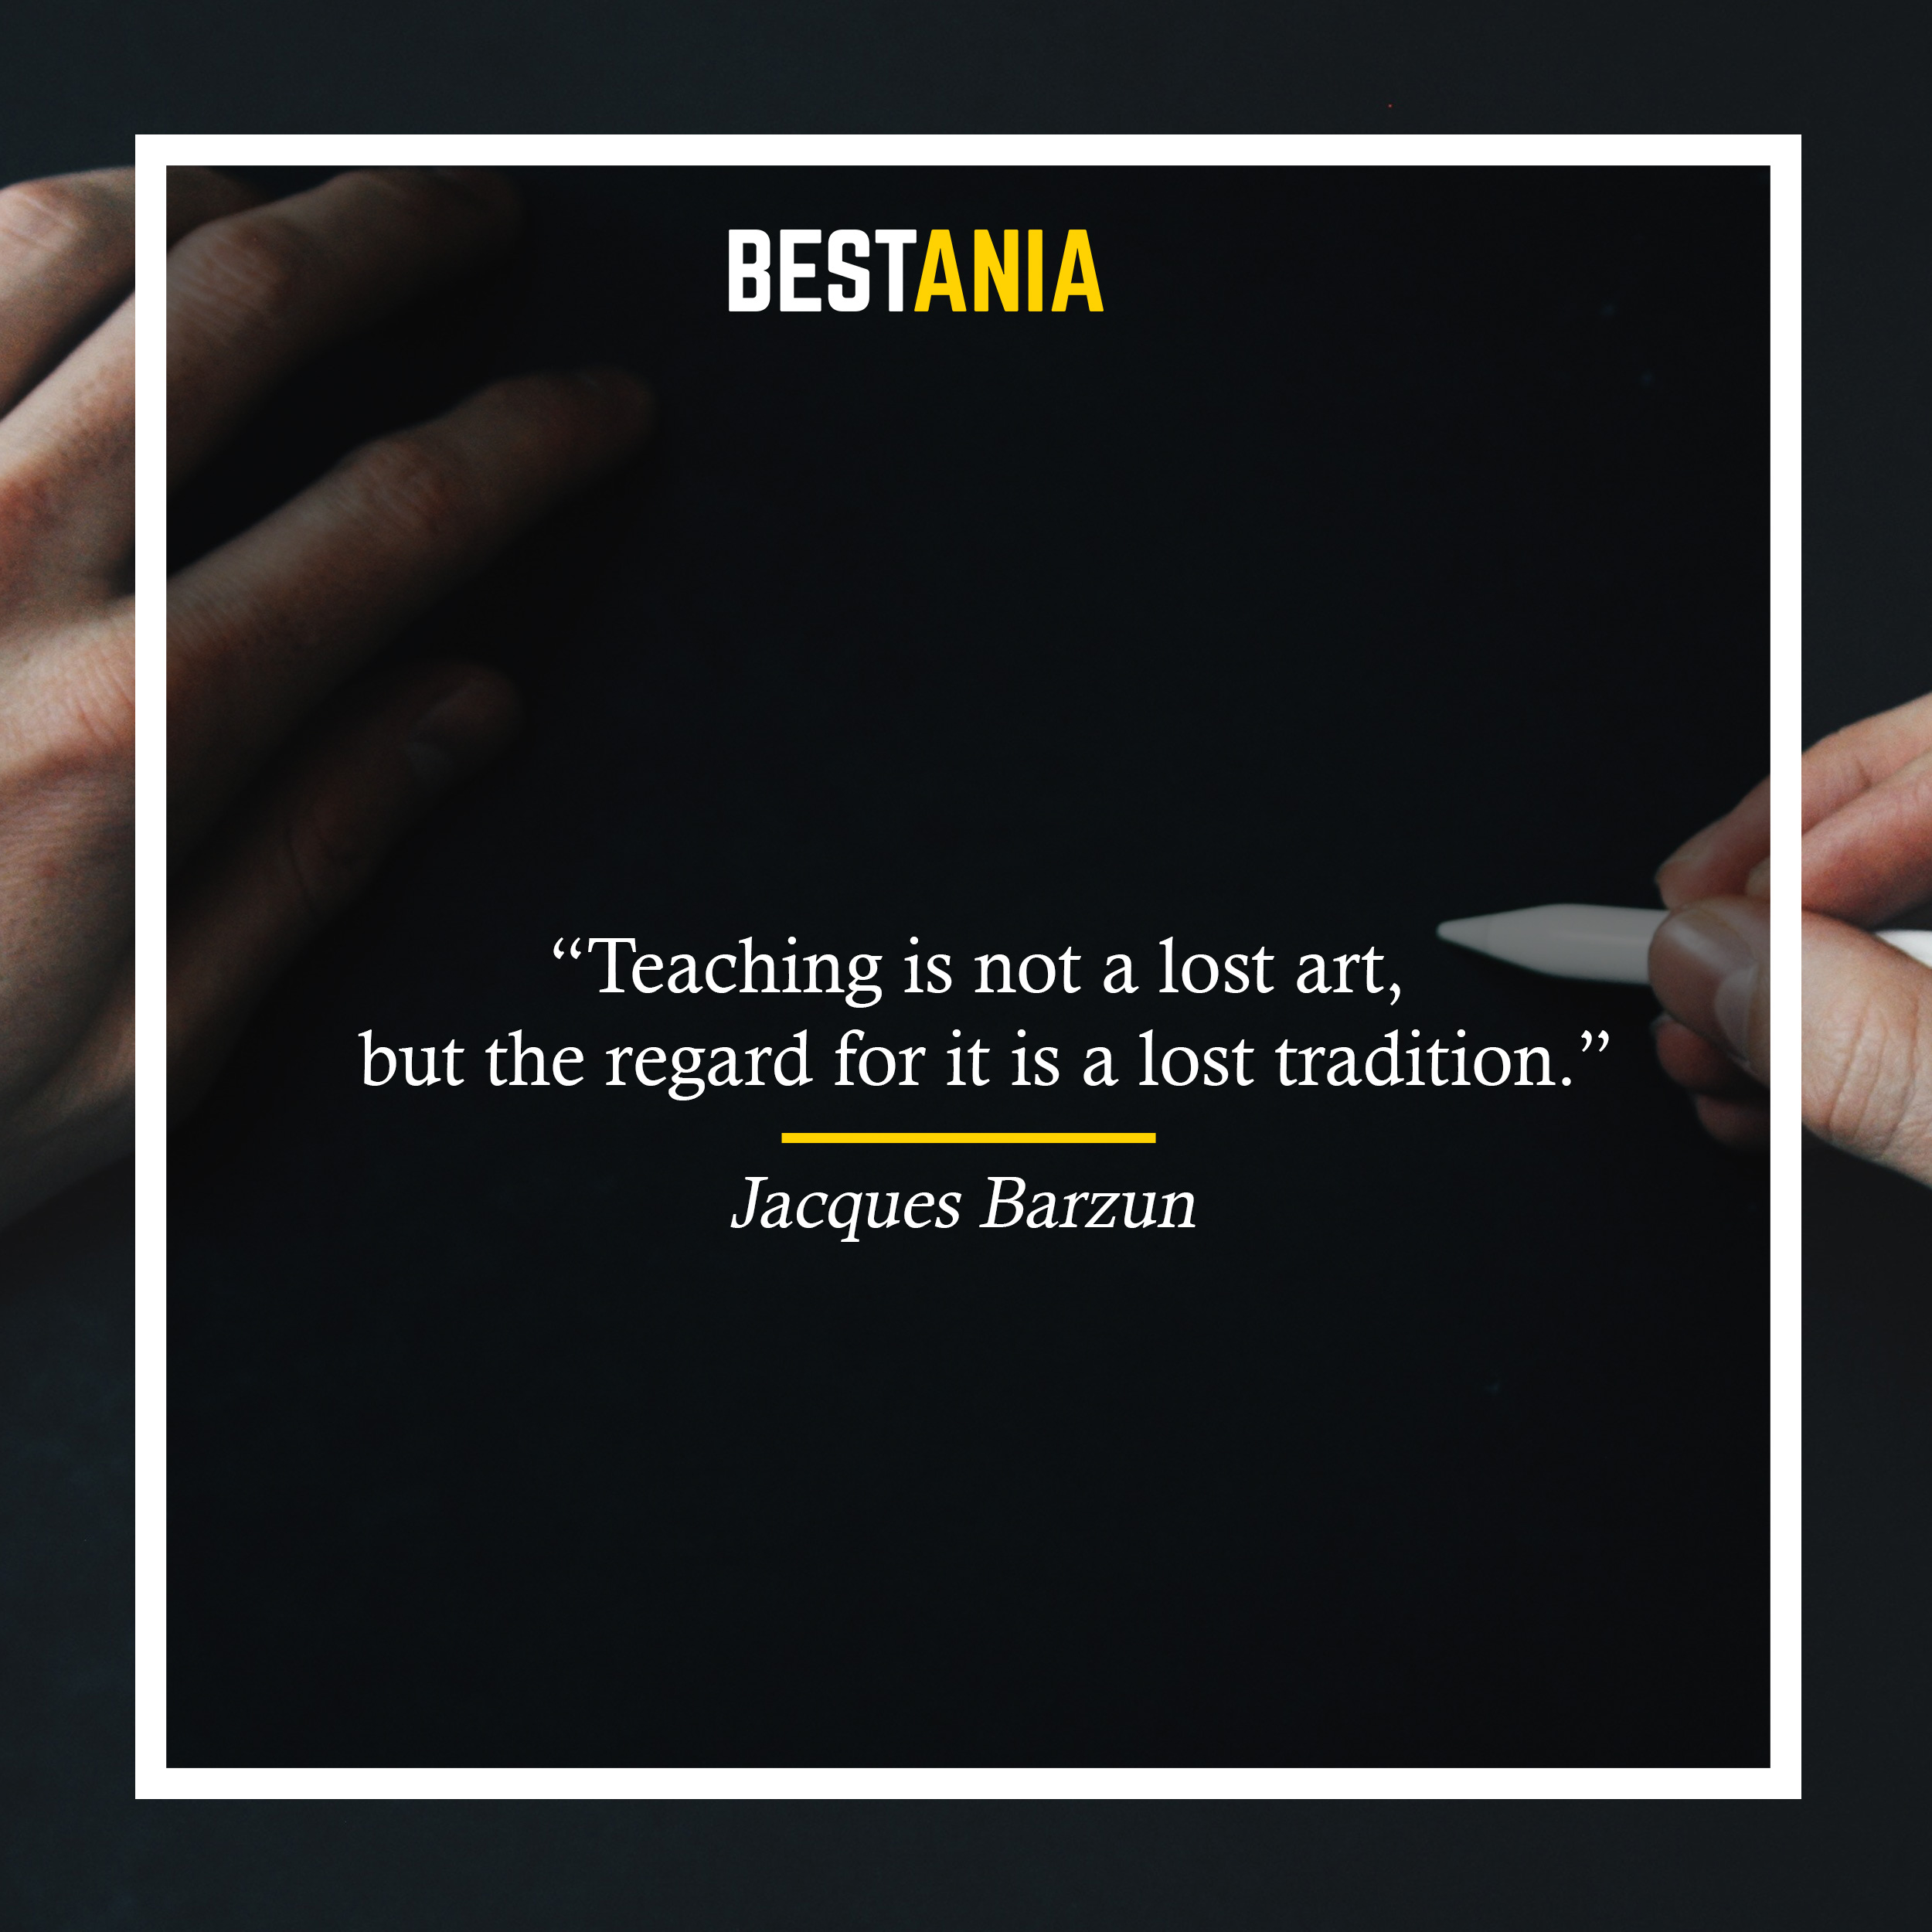 Teaching is not a lost art, but the regard for it is a lost tradition. —Jacques Barzun